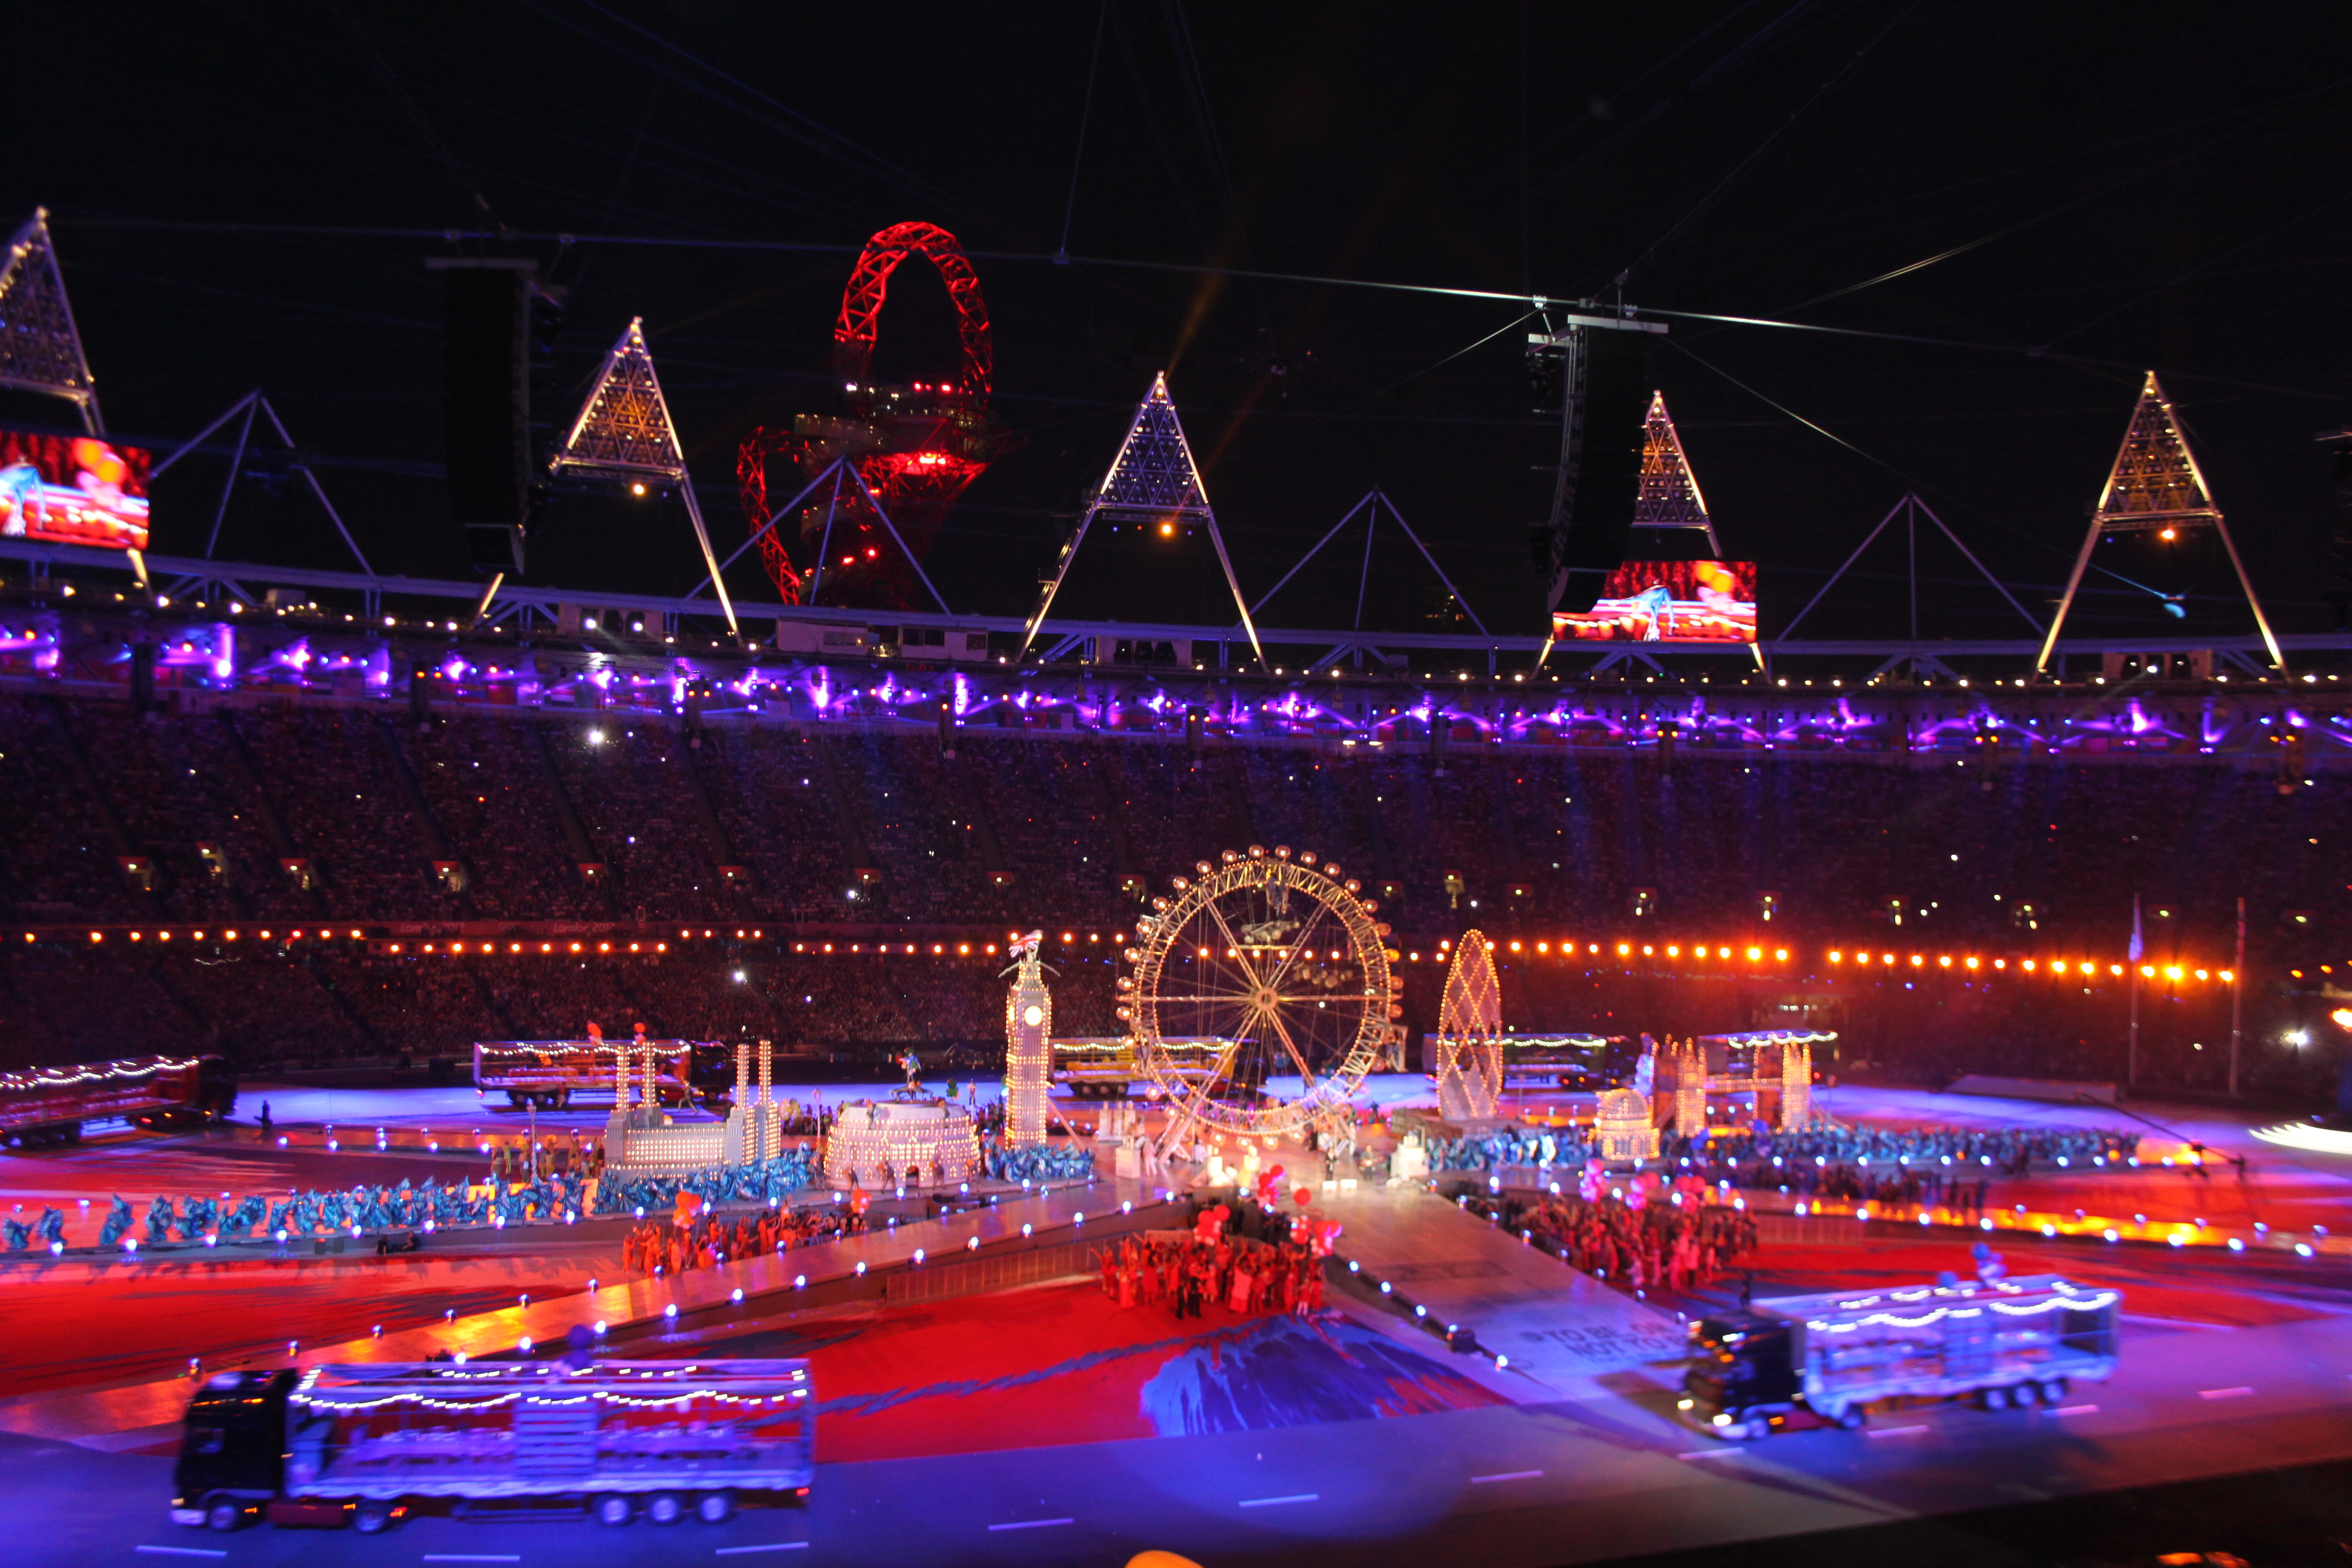 Spice Girls One Direction Bring Olympics to a Dazzling End